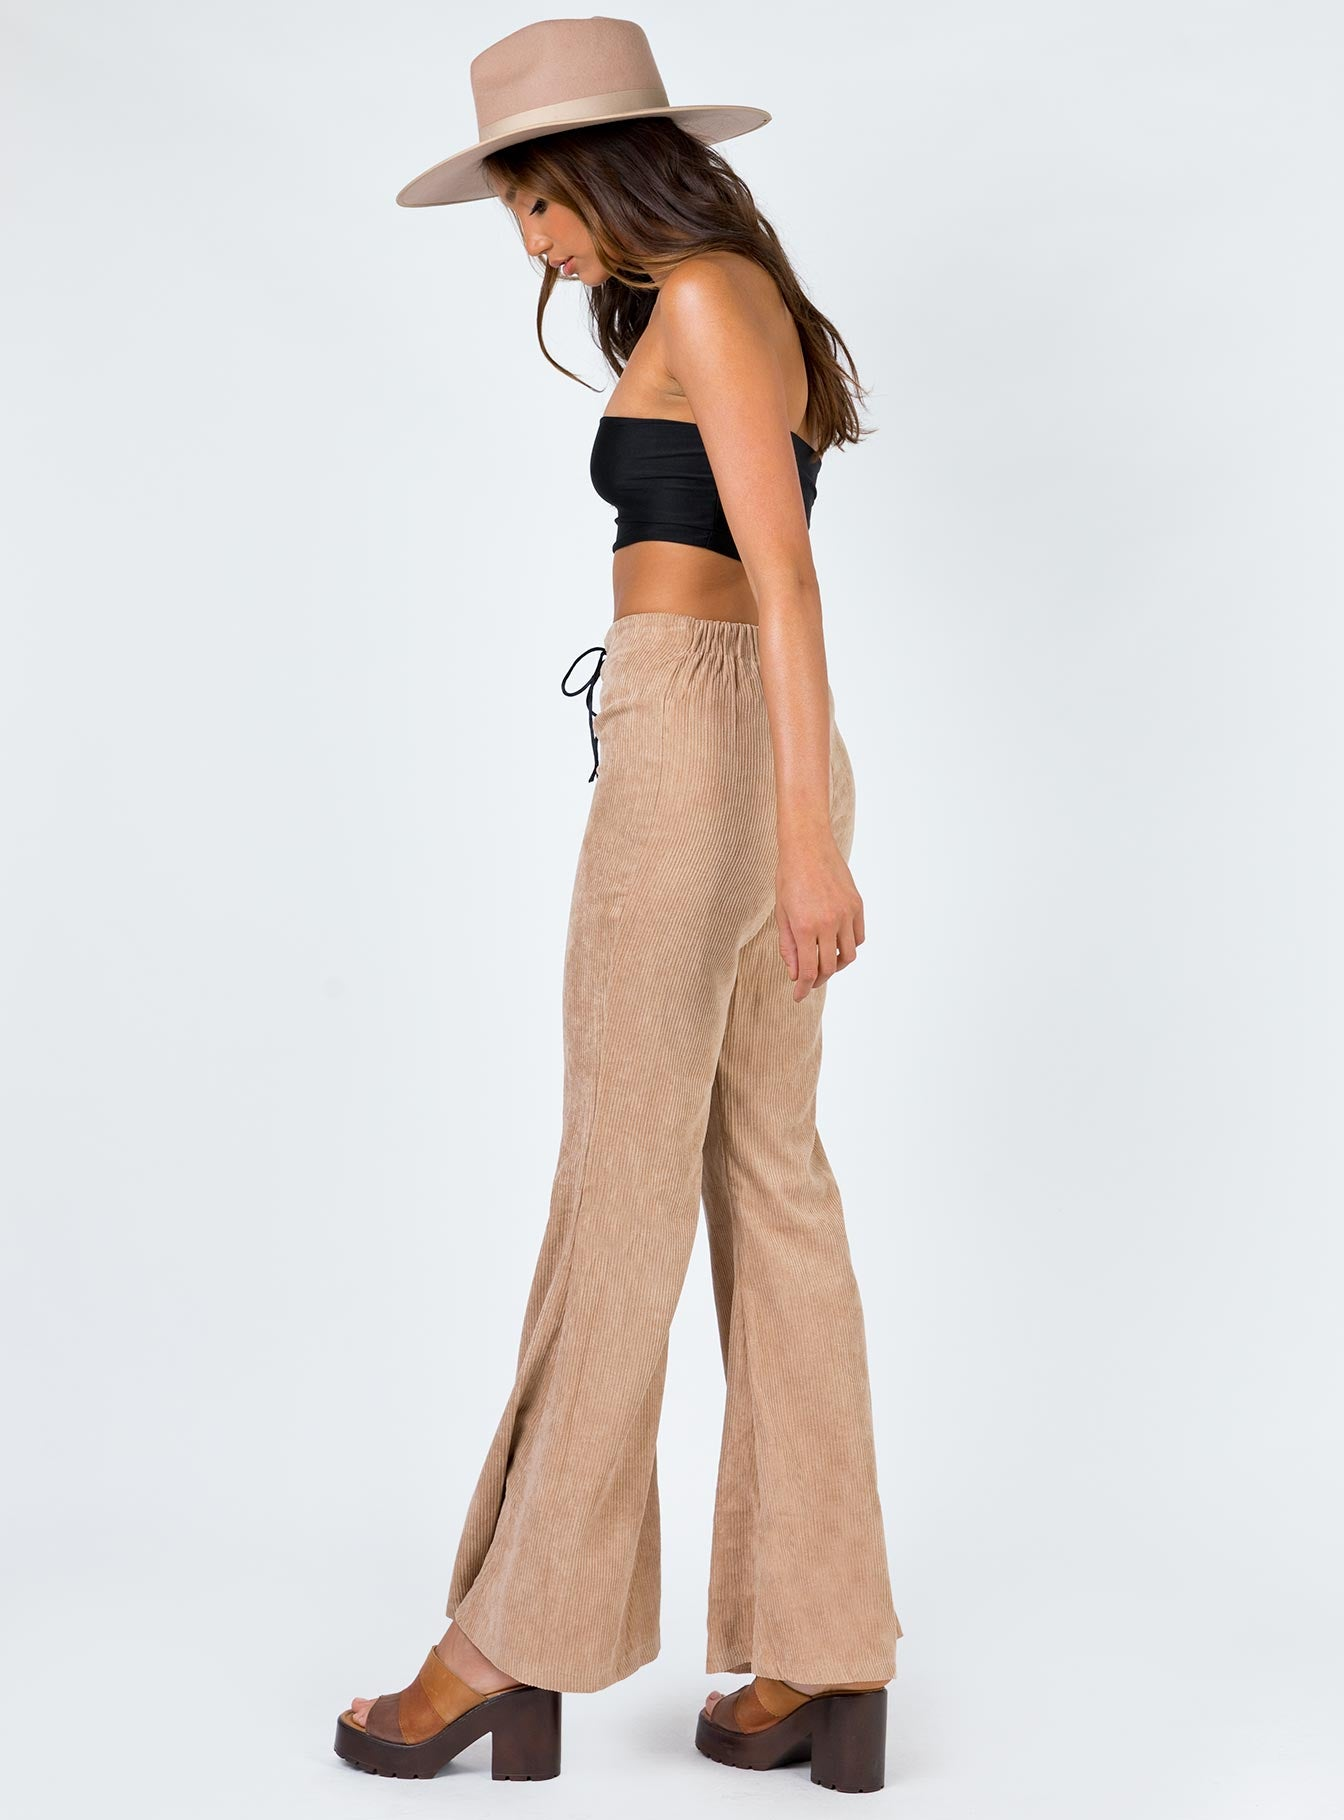 Lucile Lace Up Flares Brown